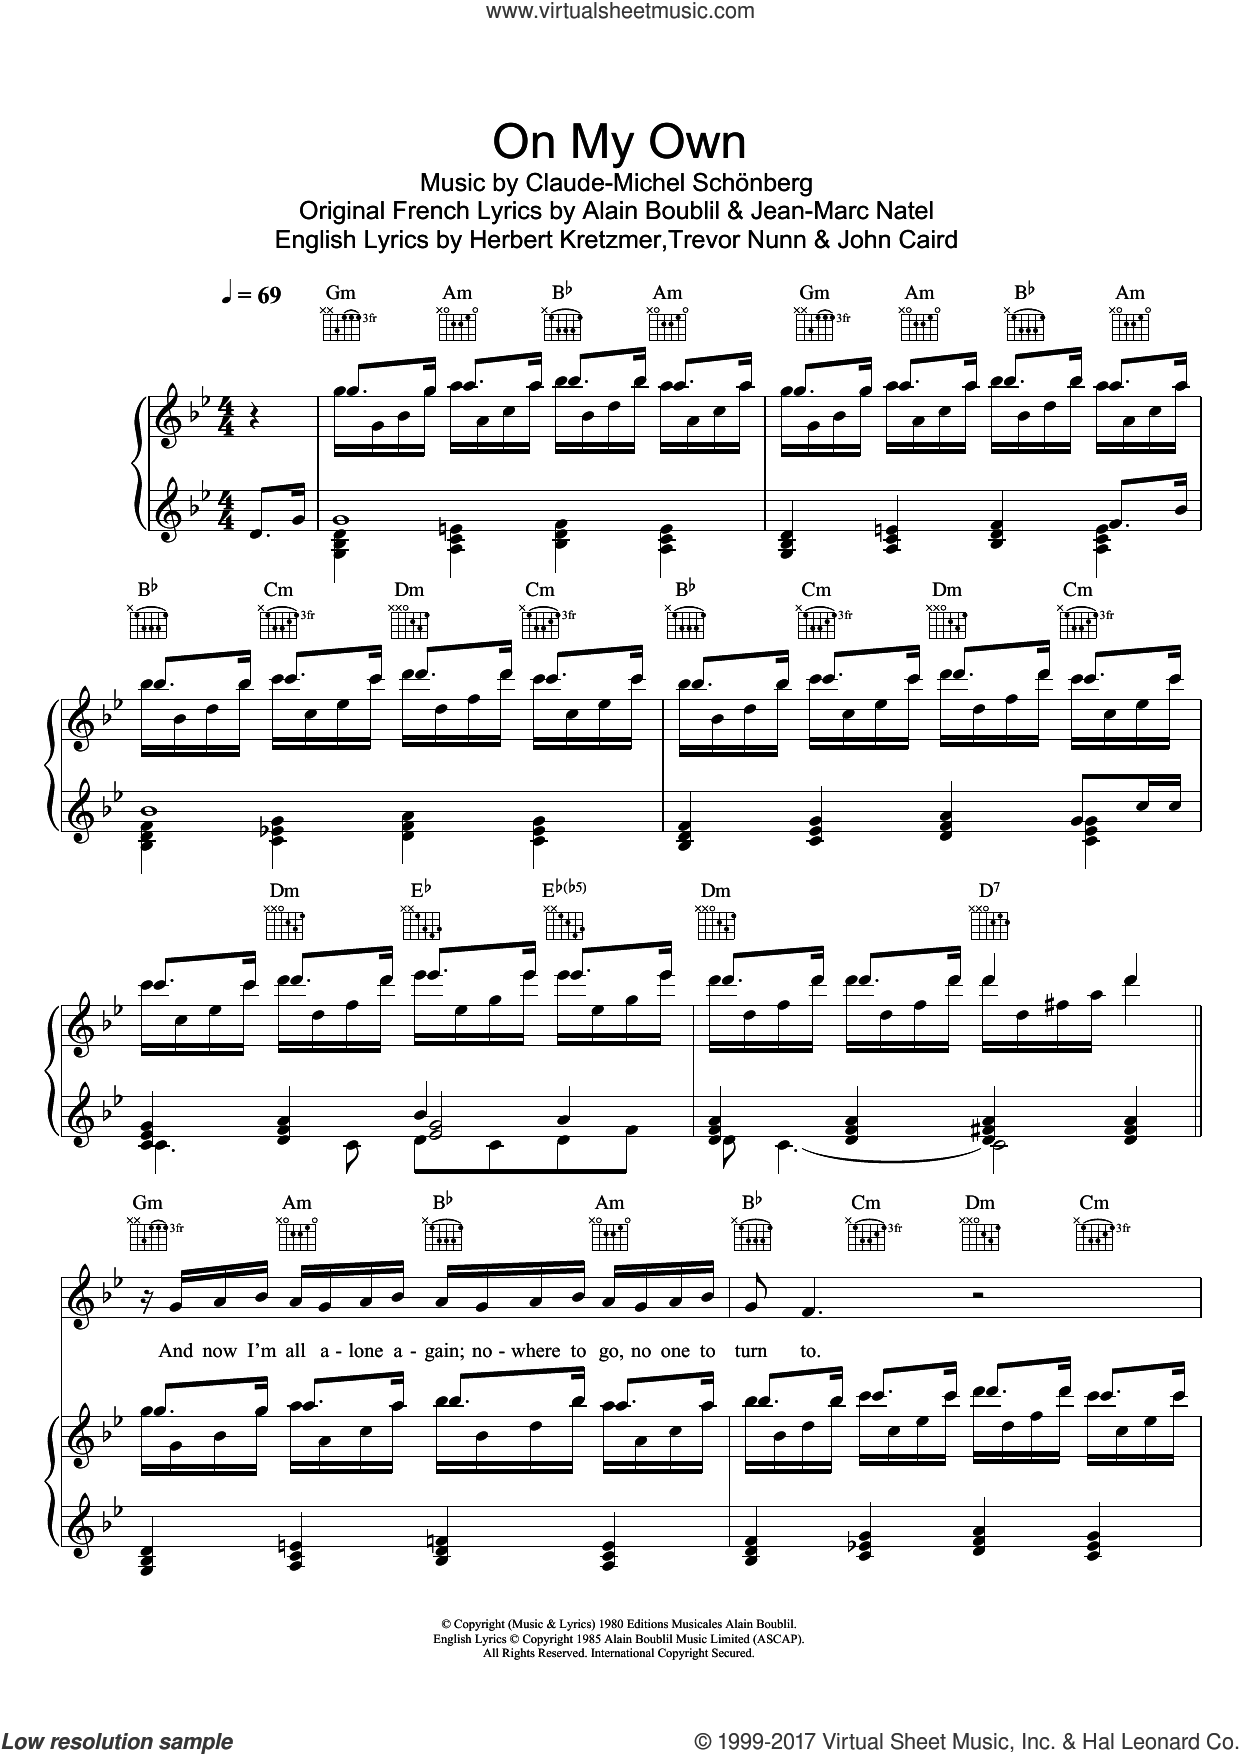 On My Own (from Les Miserables) sheet music for voice and piano by Boublil and Schonberg, Alain Boublil, Claude-Michel Schonberg, Herbert Kretzmer, Jean-Marc Natel, John Caird and Trevor Nunn, intermediate skill level